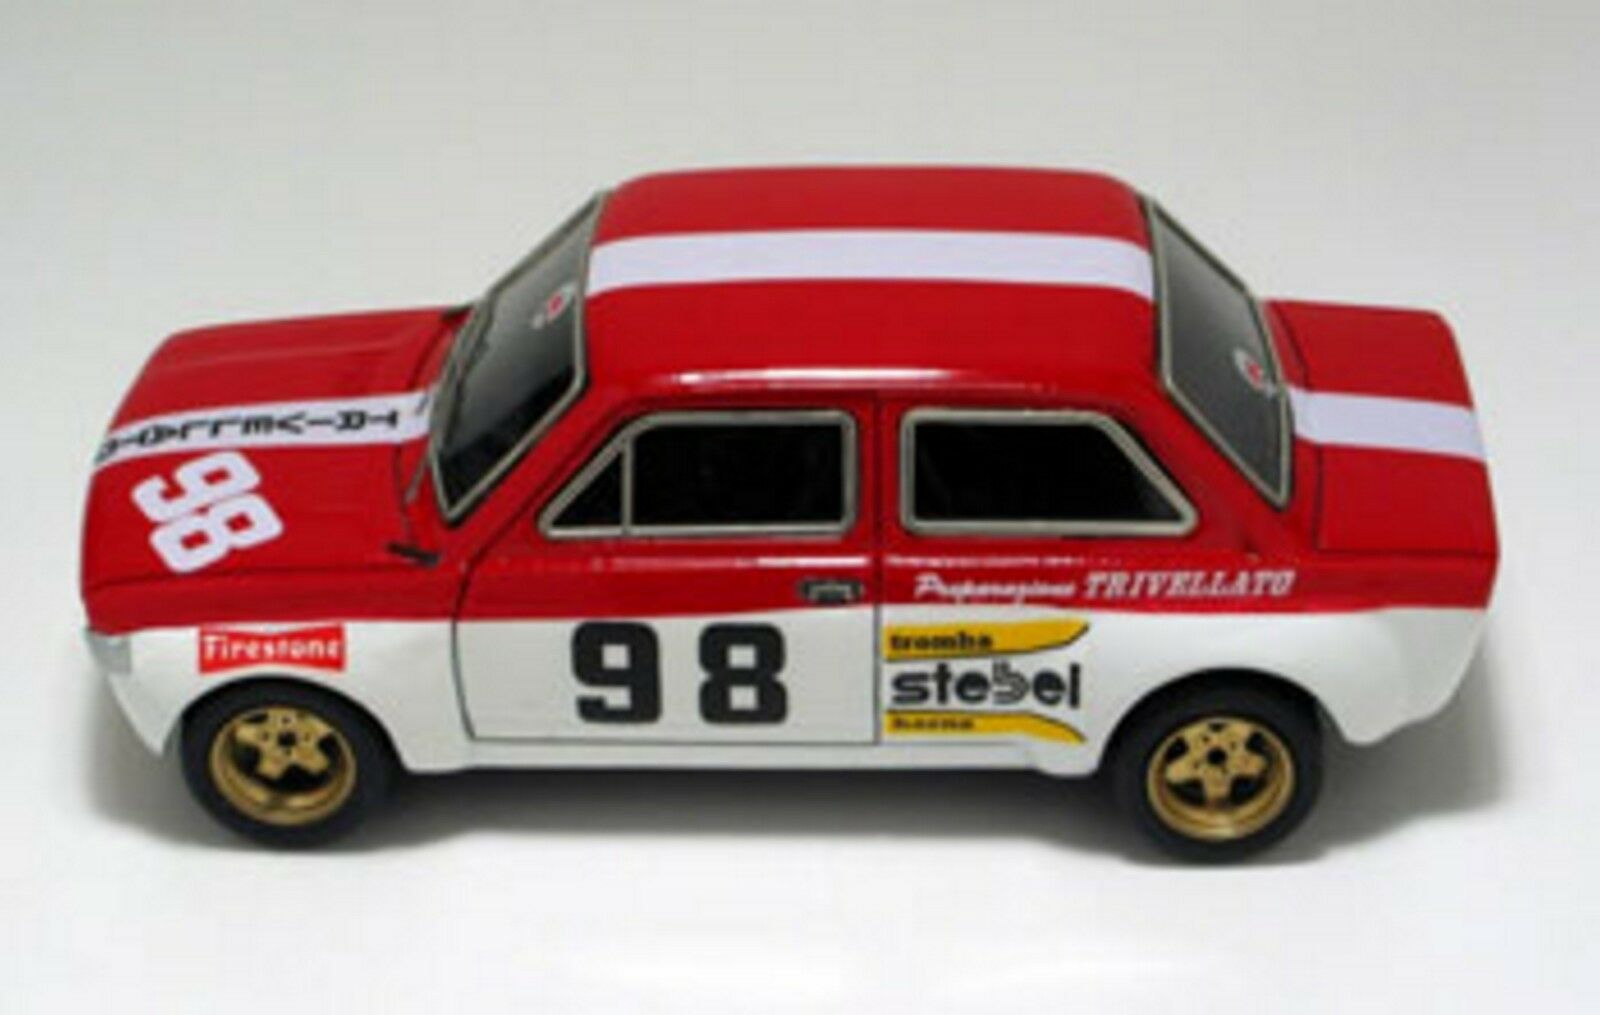 +kit Fiat 128 1100 GR.2 Team Trivellato Monza 1973 - arena models kit 1 43